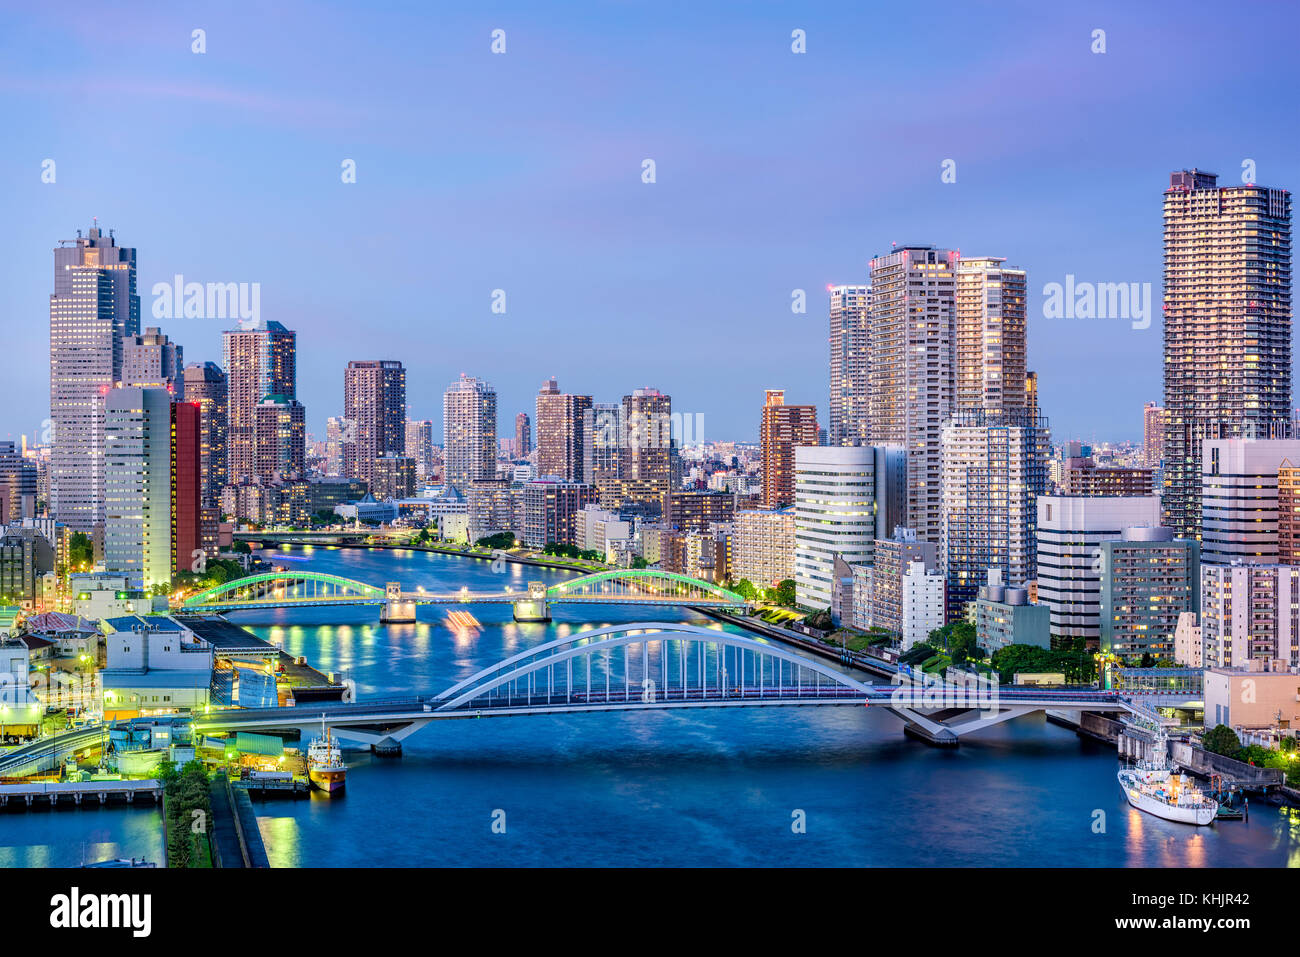 Tokyo, Japan cityscape on the Sumida River. - Stock Image